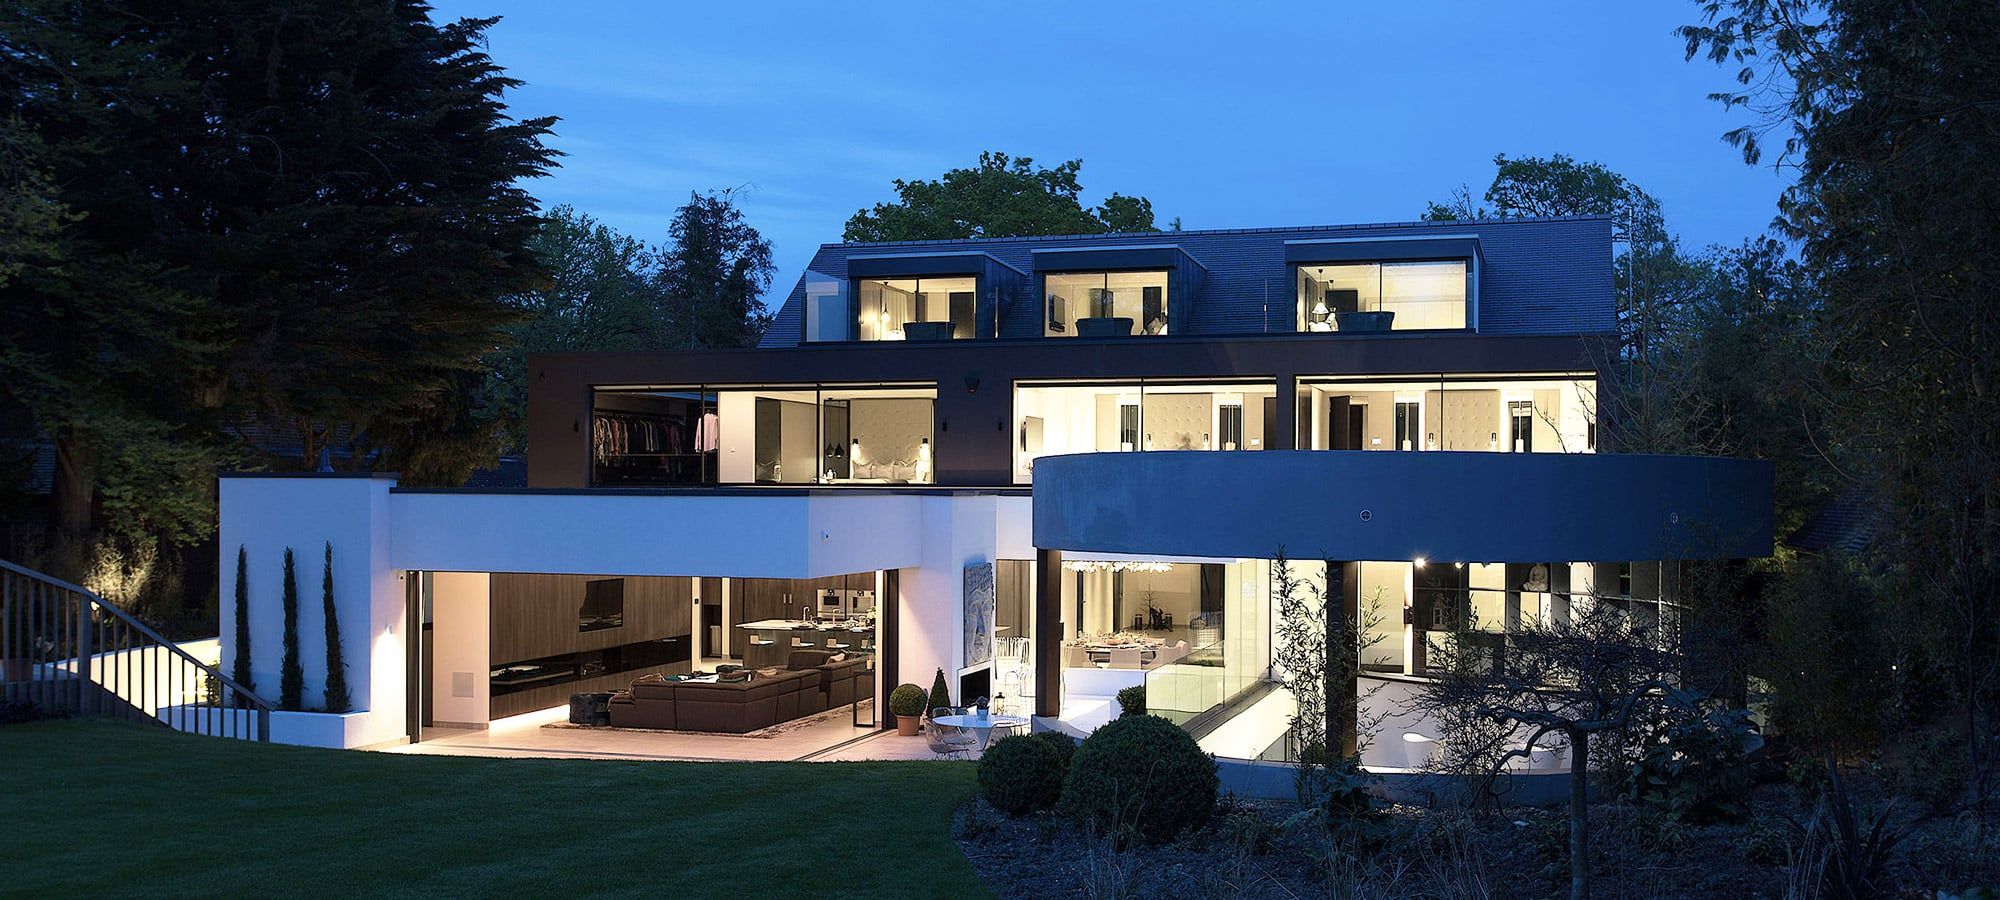 Lutron-Home-Automation-System Pro Install AV Celebrate Success With Award-Winning Home Automation Installation